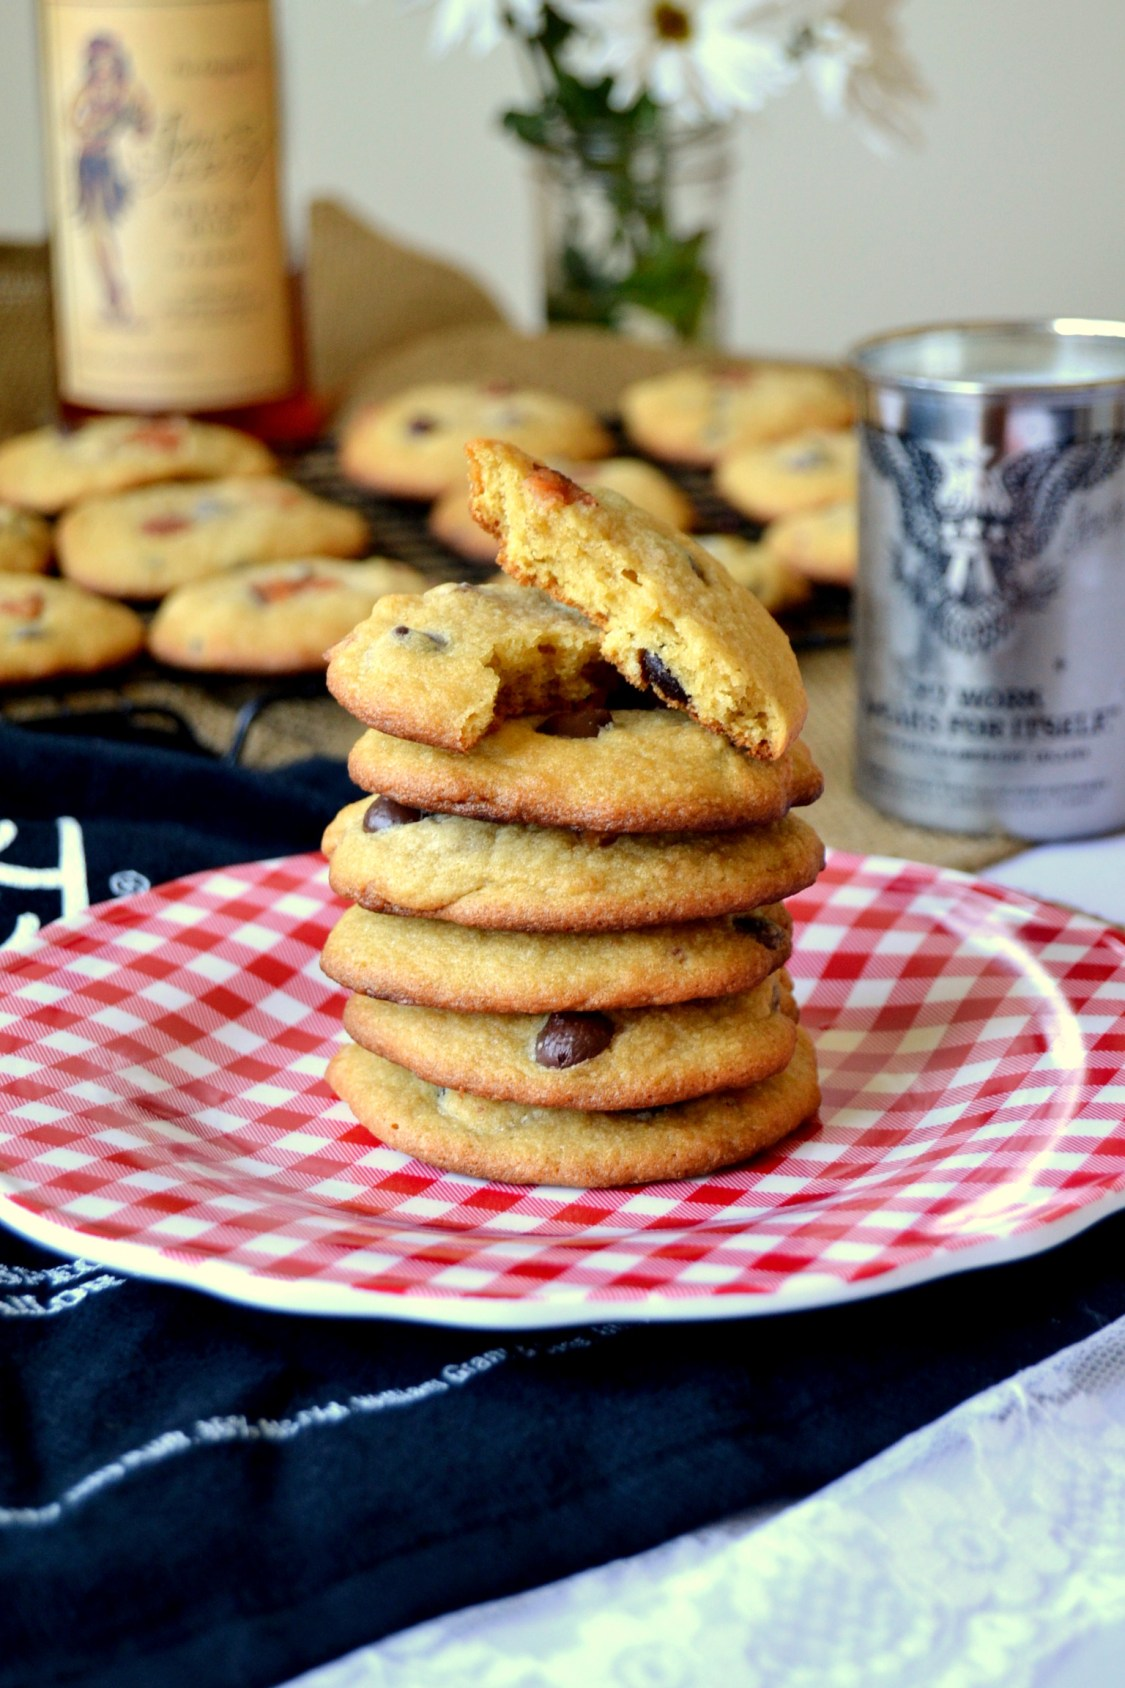 Tattooed-Martha-Sailor-Spiked-Bacon-Chocolate-Chip-Cookies-8